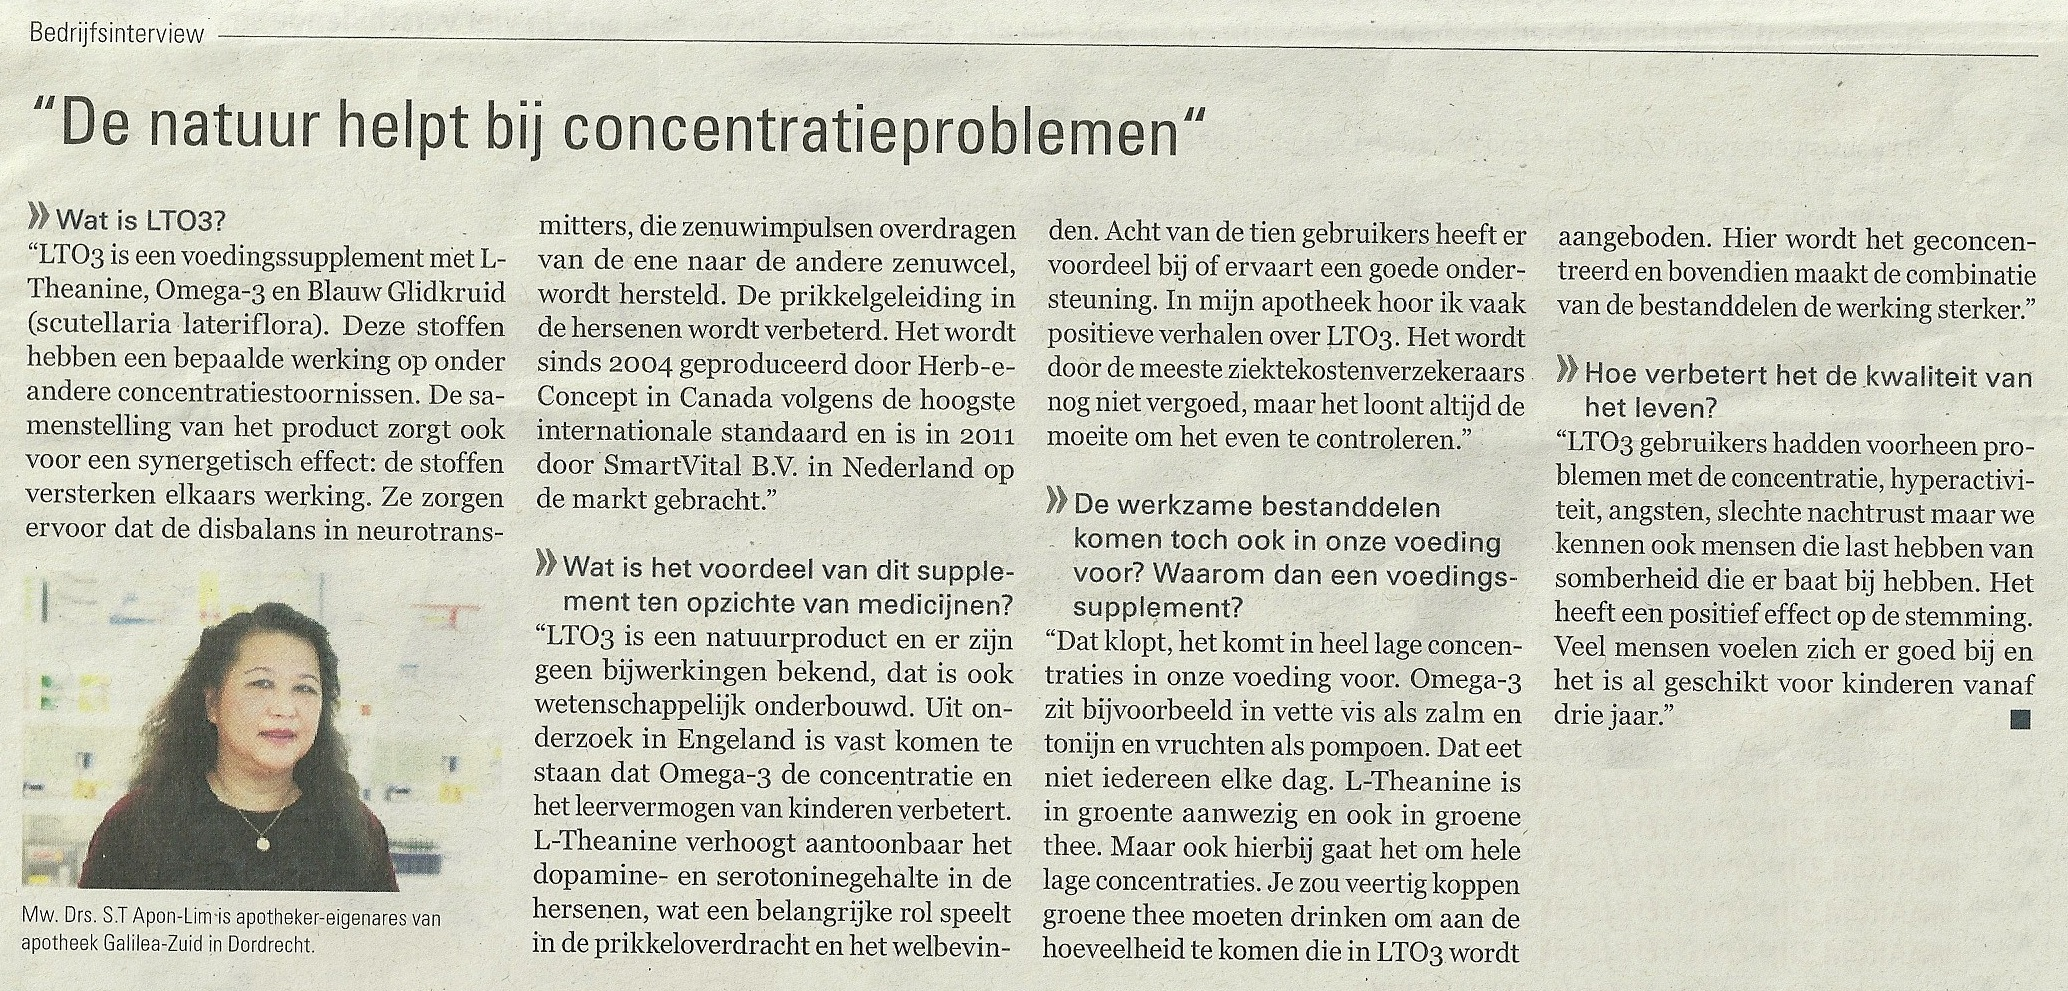 Artikel over LTO3 in De Telegraaf